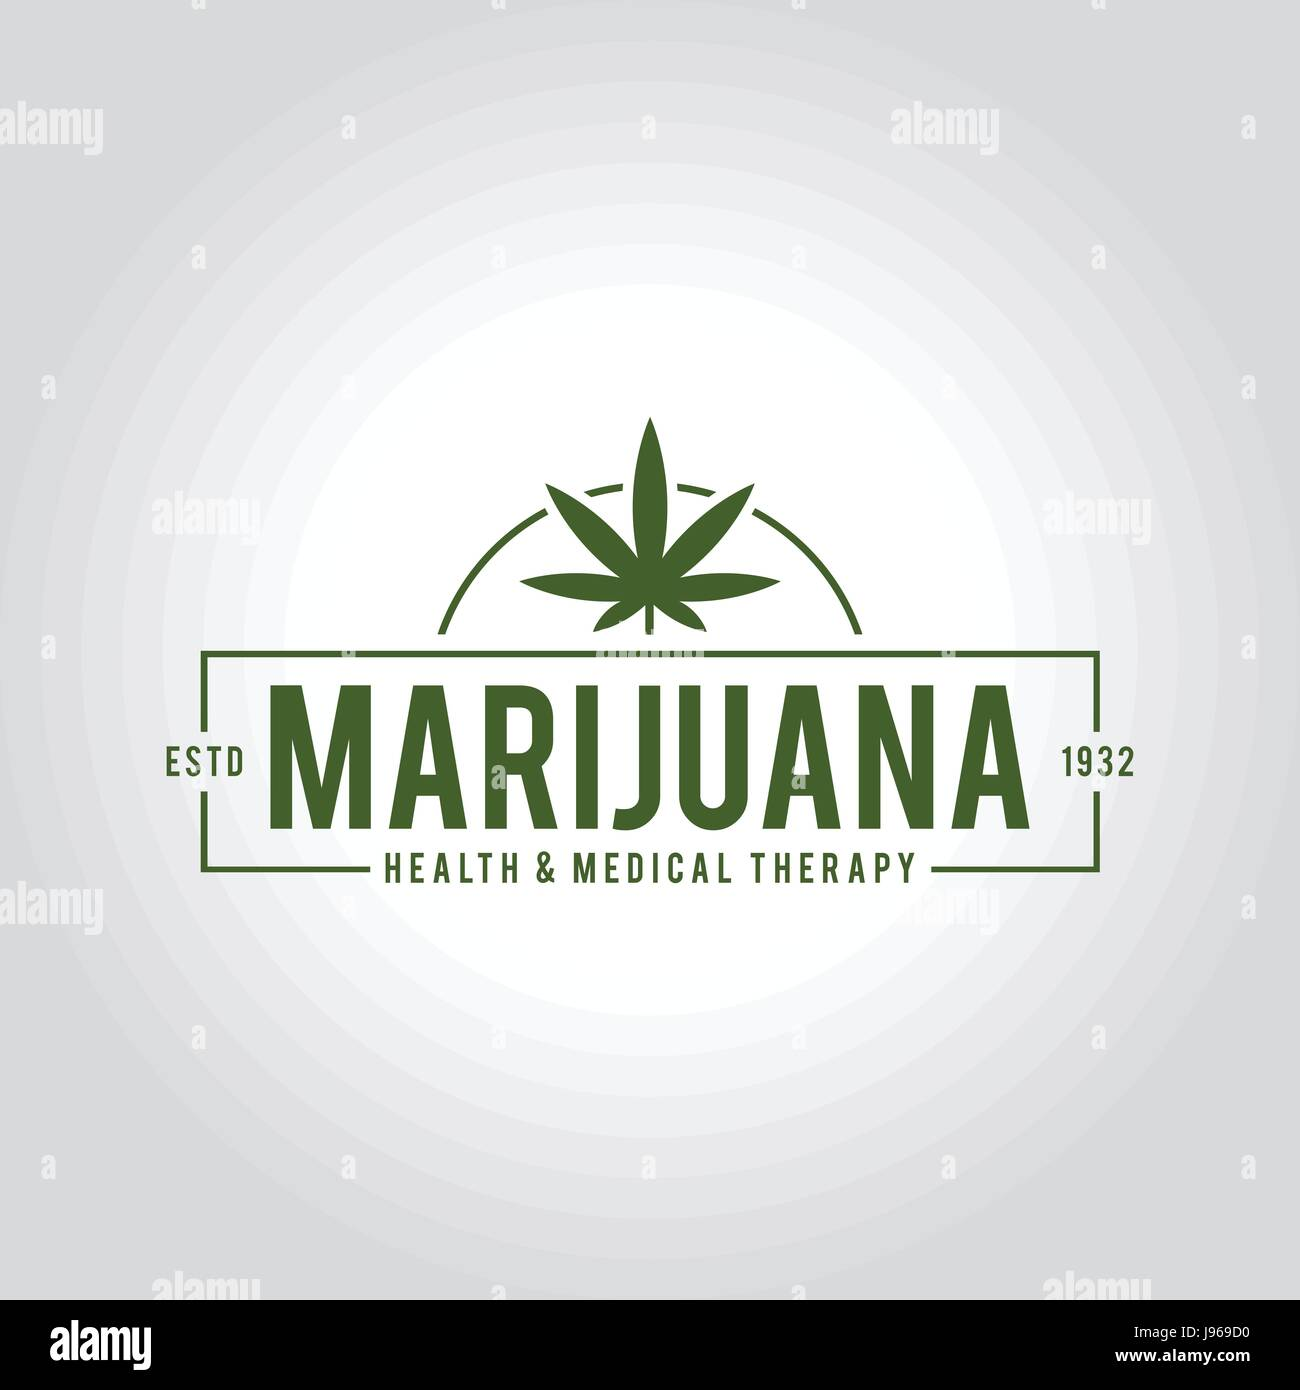 Vintage Marijuana label design, Cannabis Health and Medical therapy, vector illustration - Stock Vector